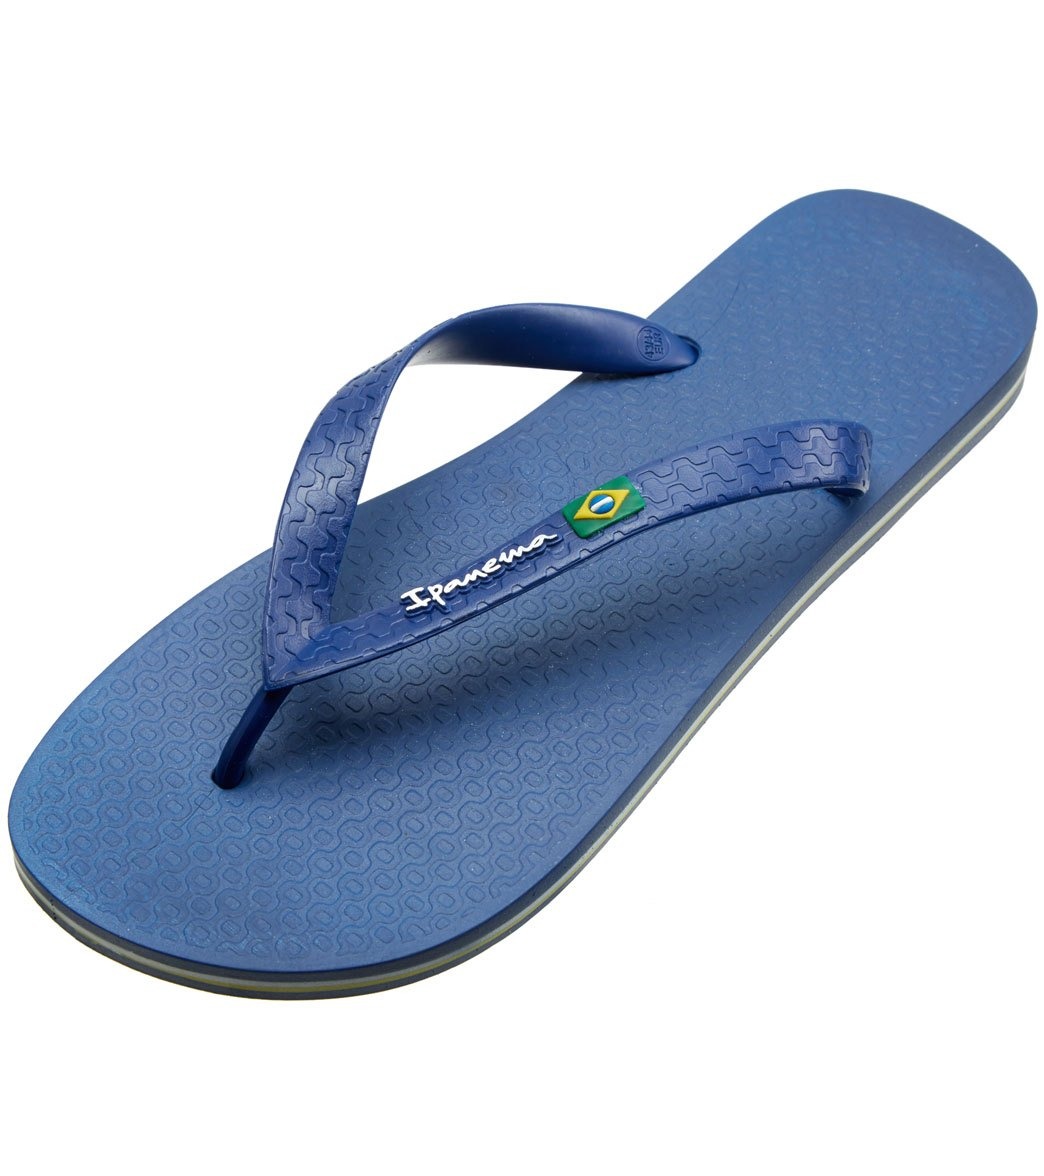 1cdb9dc28035fc Ipanema Men s Classic Brazil II Flip Flop at SwimOutlet.com